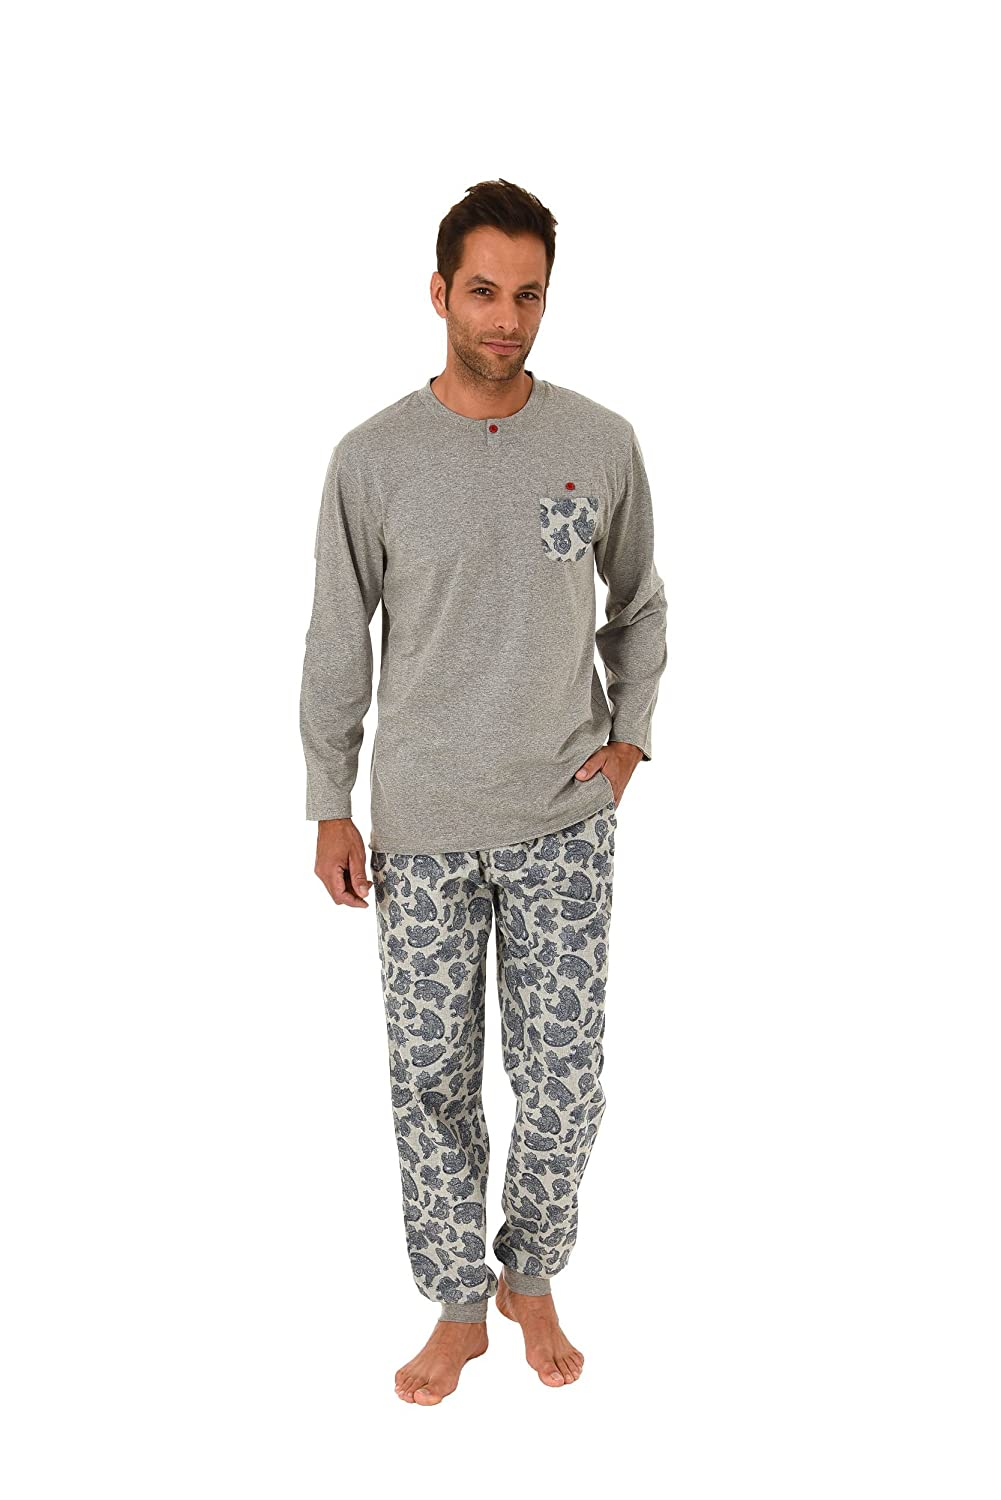 50-70% Rabatt Modestil klassisch Normann Copenhagen Men's Pyjama Set - Grey - Medium: Amazon ...